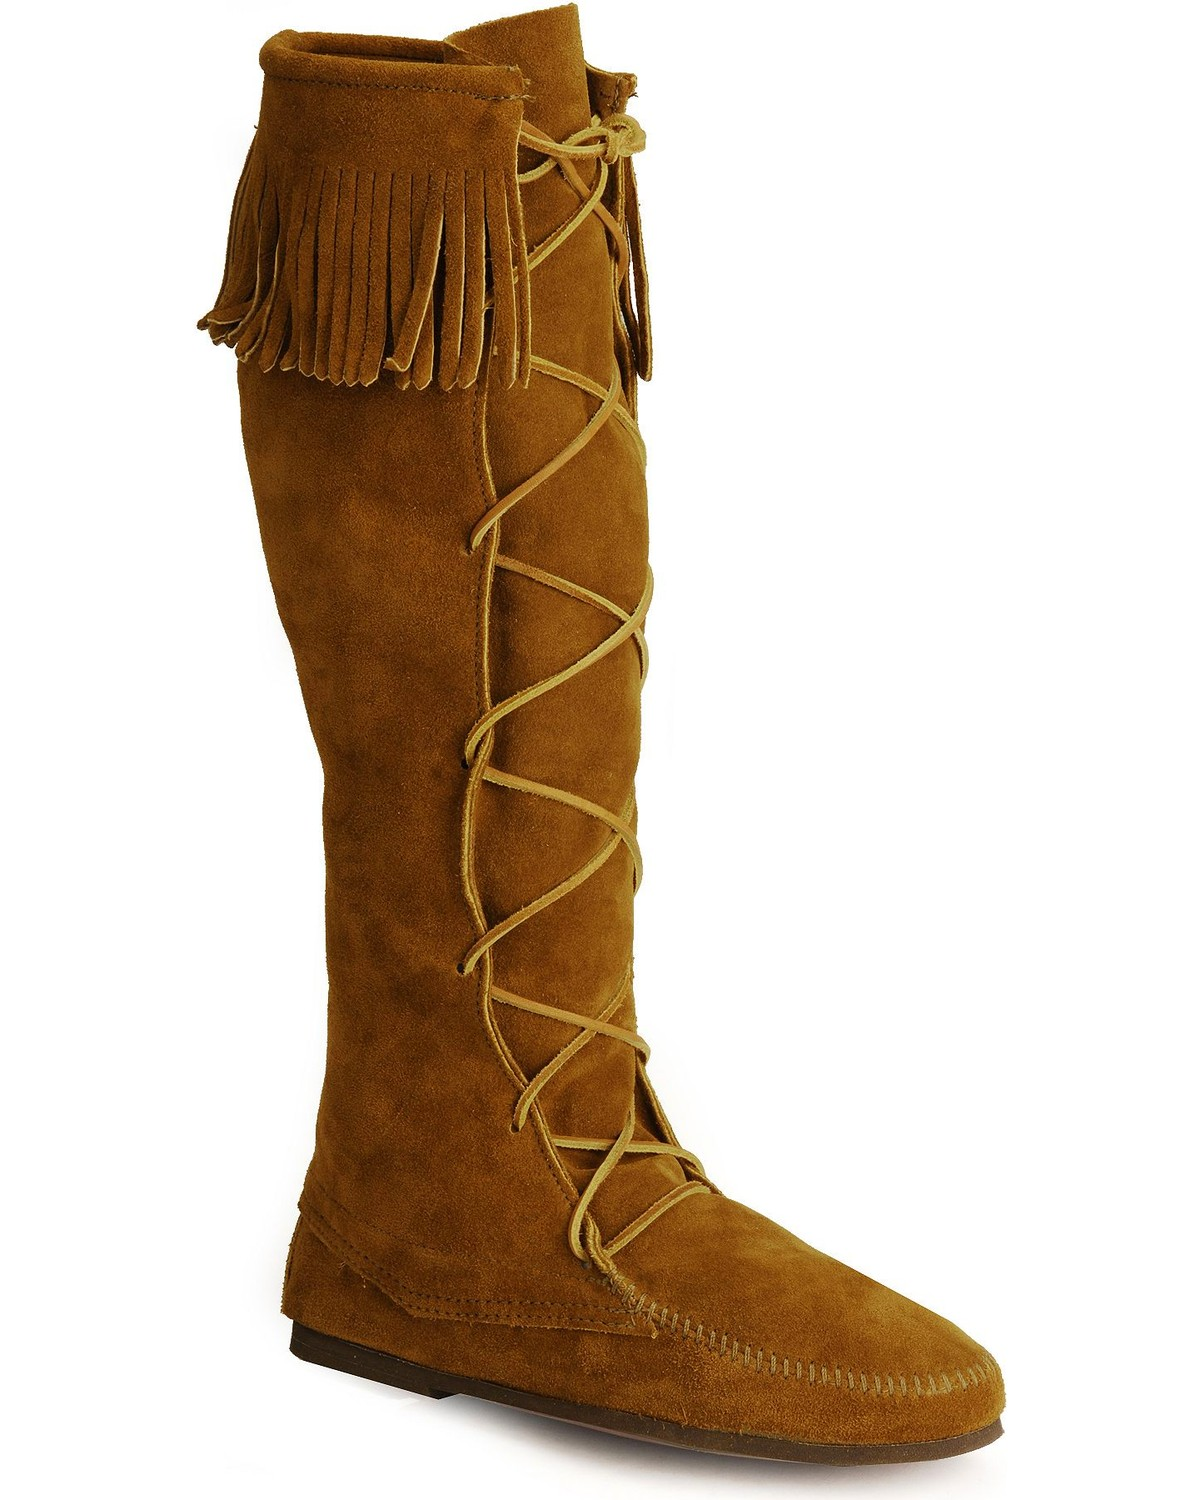 6729549269e Minnetonka Men s Lace-Up Suede Knee High Boots